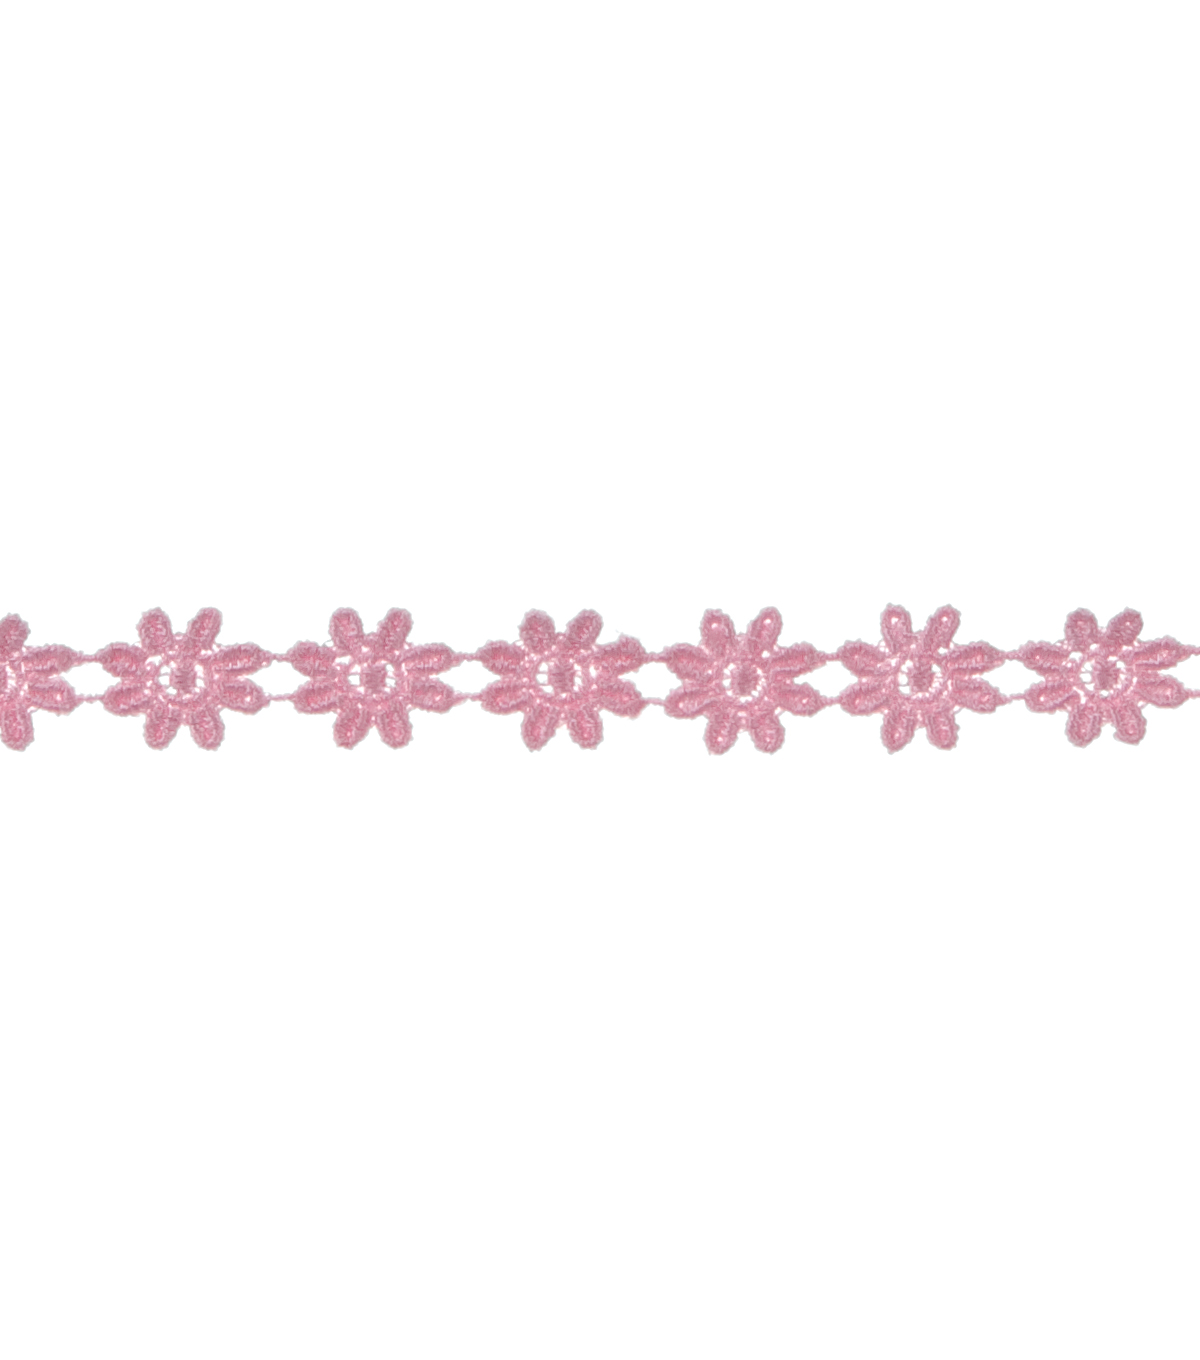 Mini Daisy Venice Primrose 2 Yds Apparel Trim